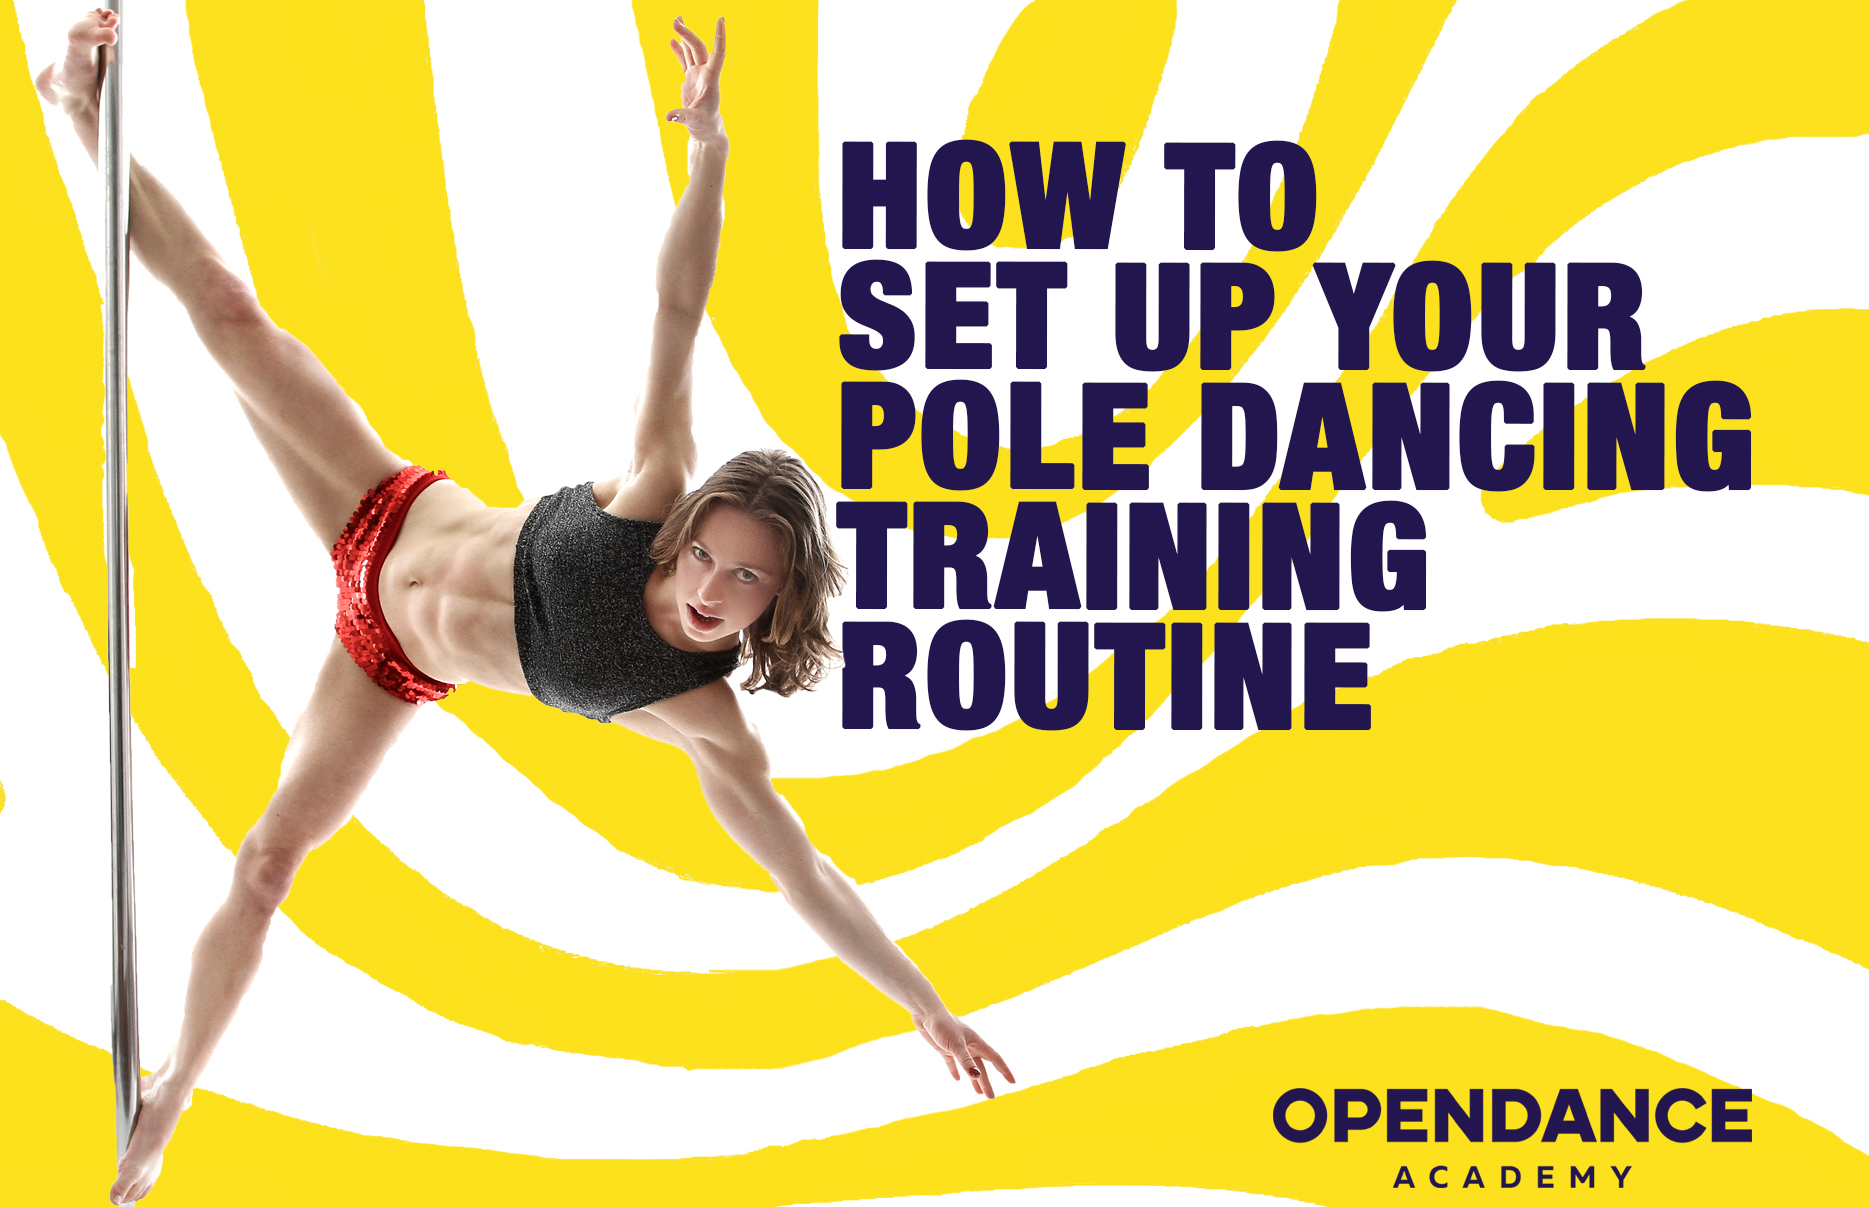 How to Set Up Your Pole Dancing Training Routine